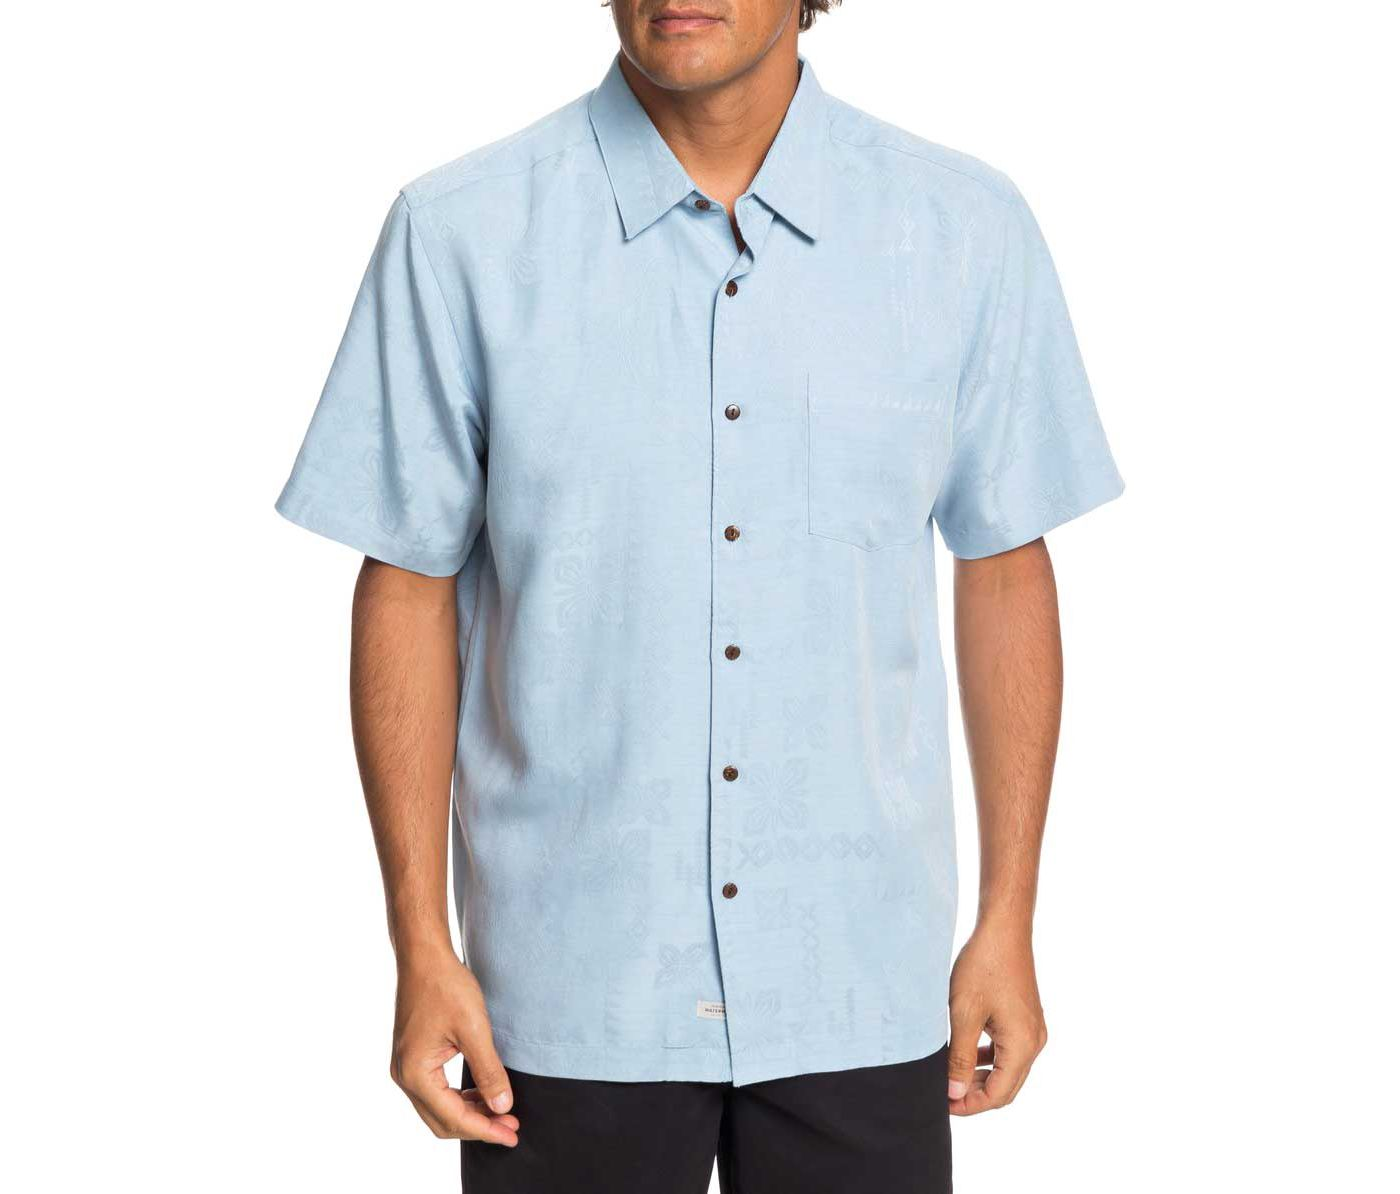 Quiksilver Men's Waterman Kelpies Bay Short Sleeve Shirt